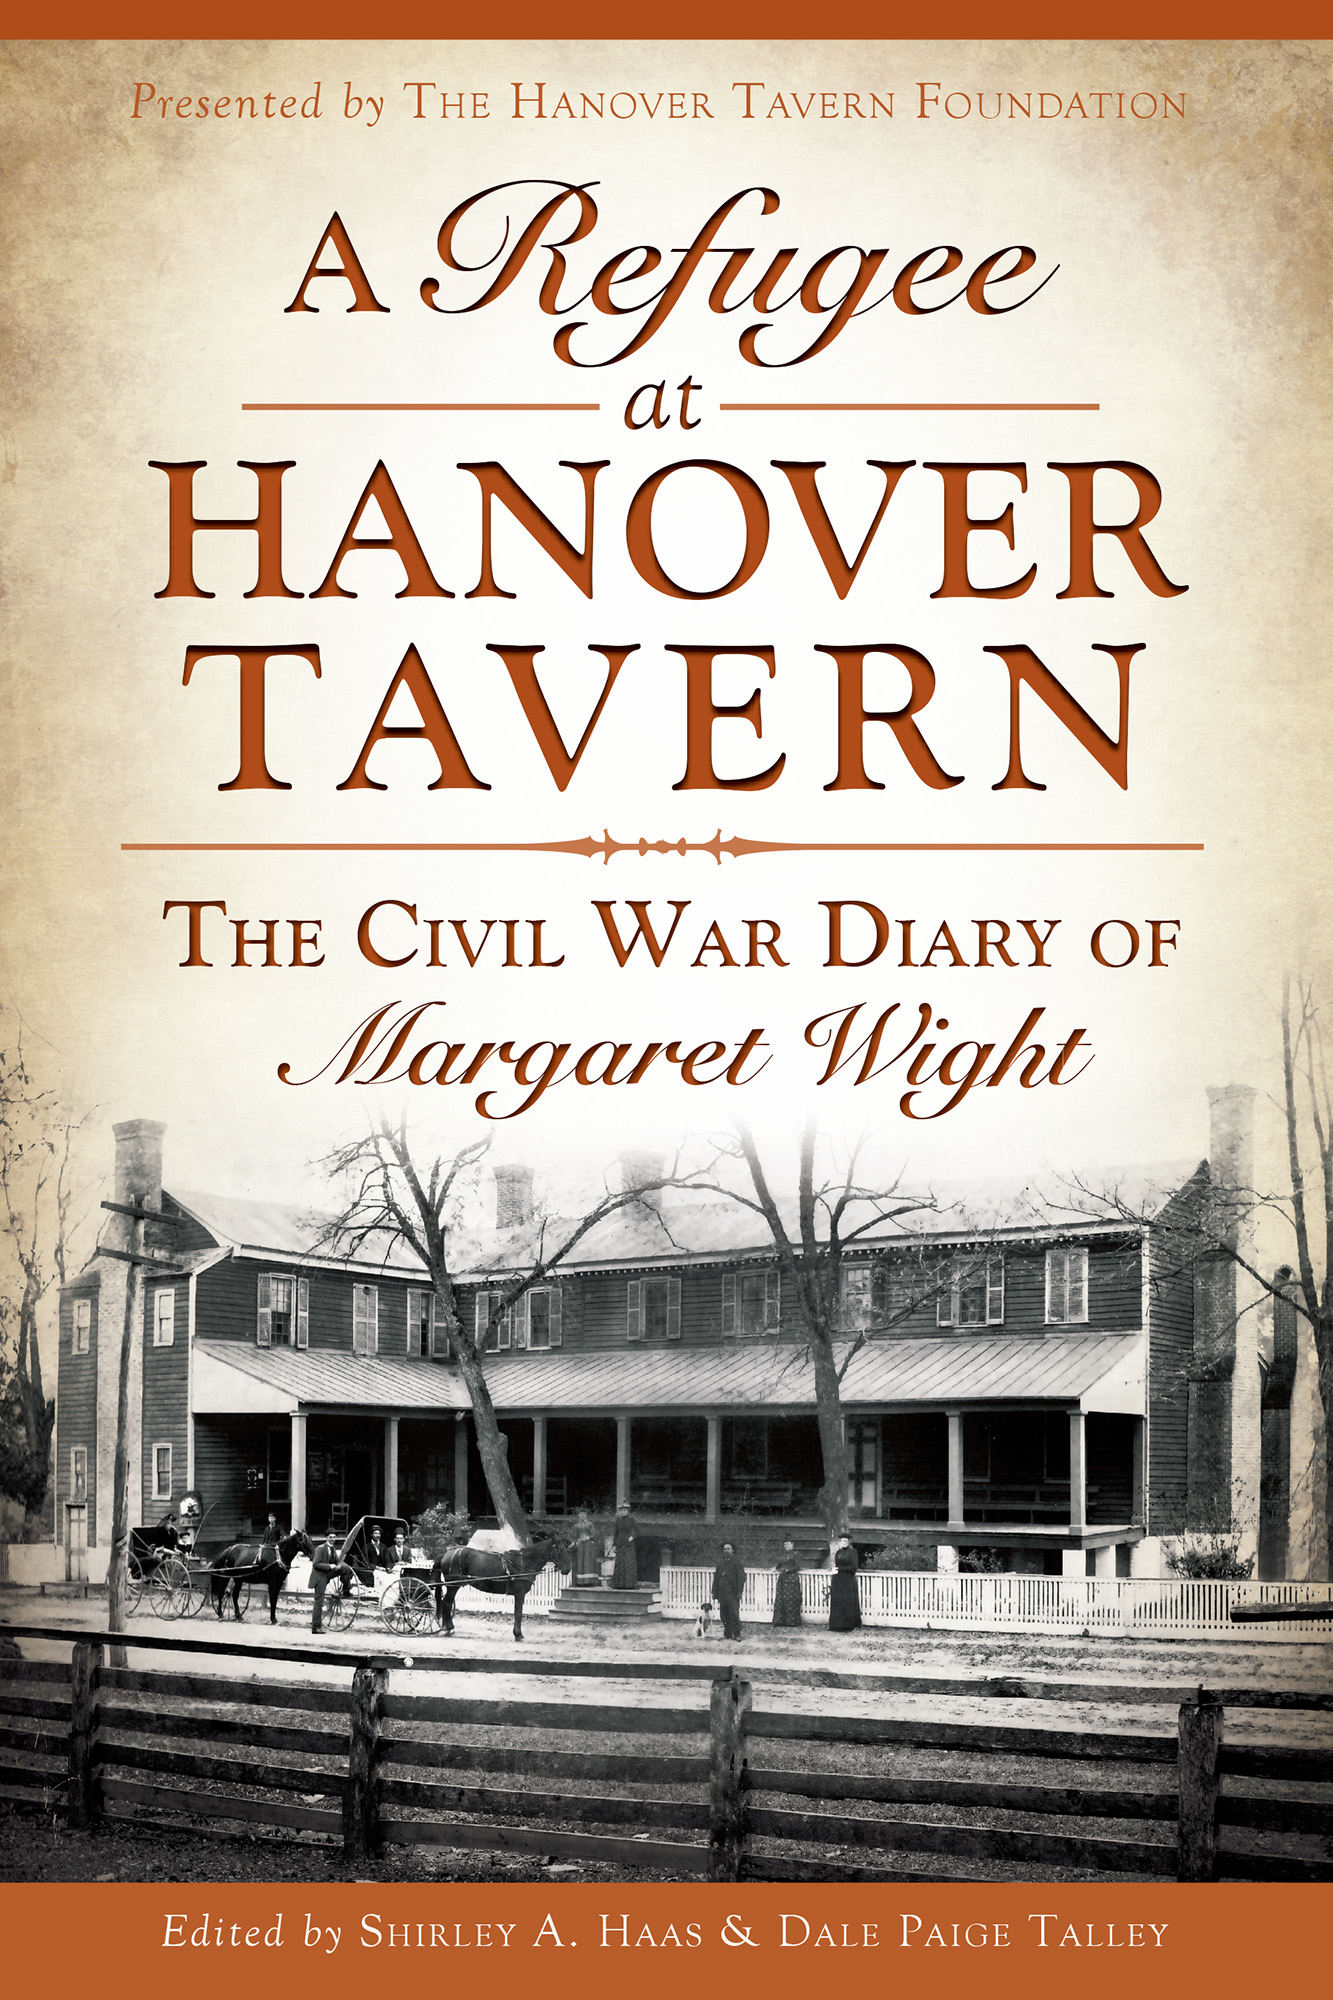 PhD, Dale Paige Talley, Robert E.L. Krick, Shirley A. Haas, The Hanover Tavern Foundation  Alphine Jefferson - A Refugee at Hanover Tavern